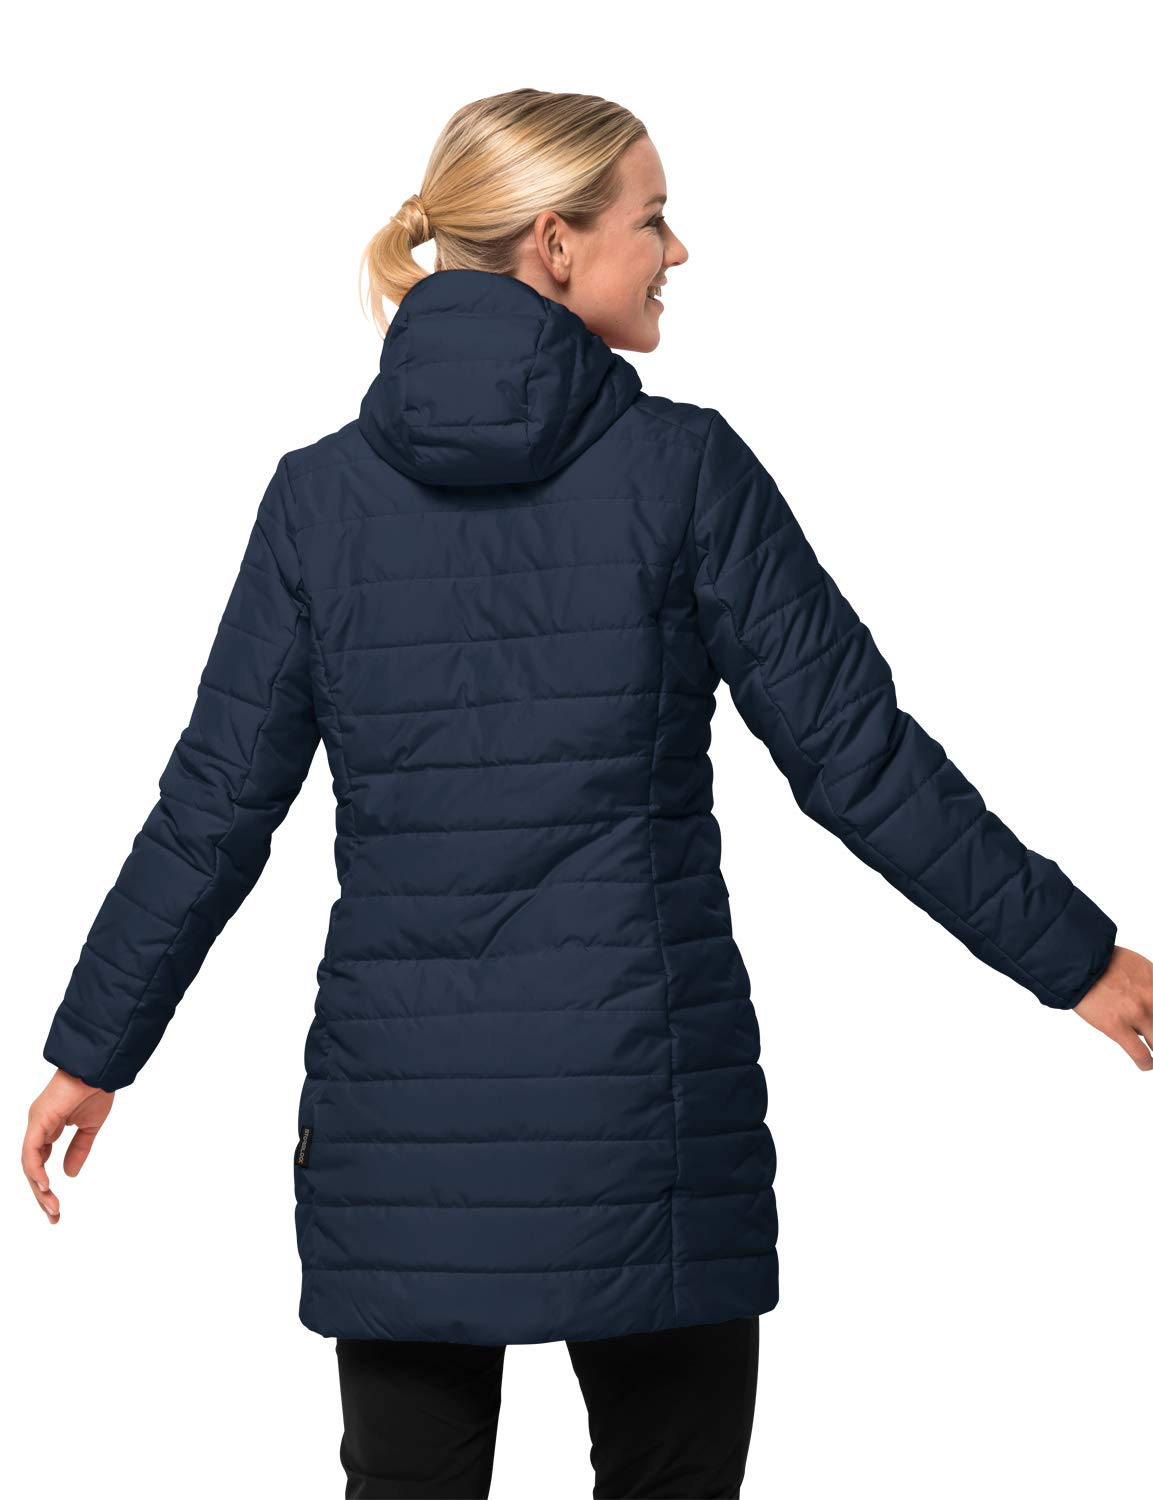 Jack Wolfskin Women's Maryland Windproof Insulated Choose SZcolor